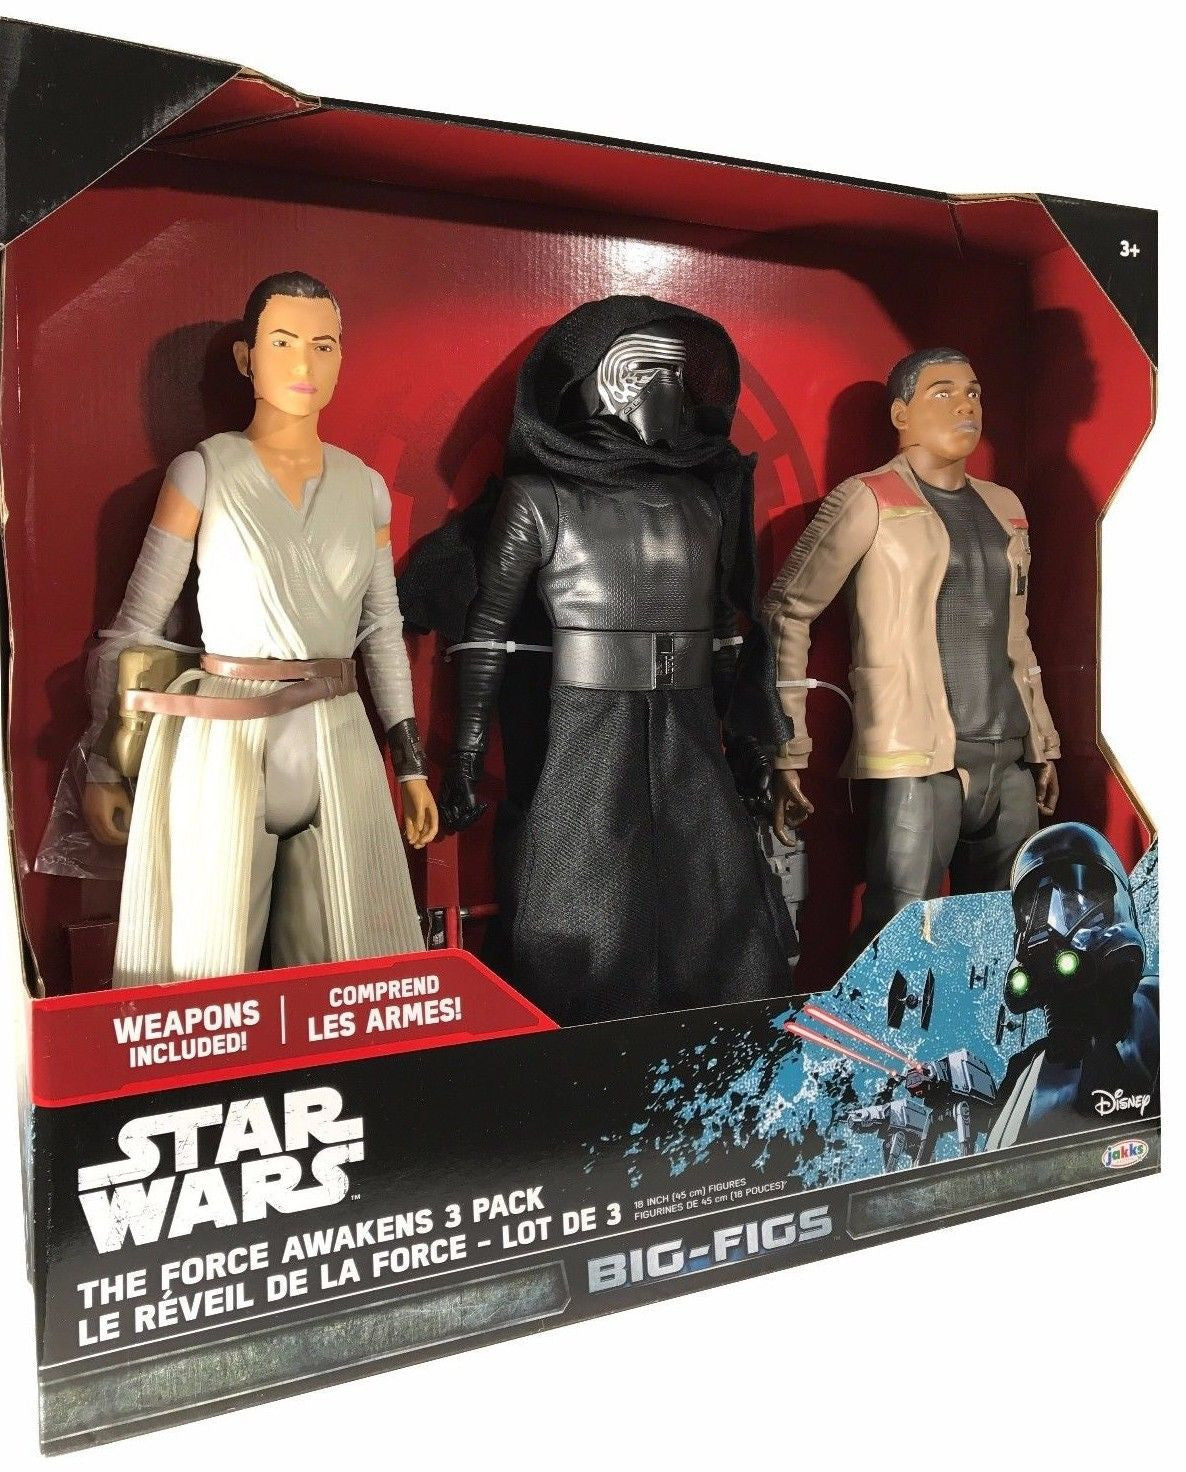 Star Wars The Force Awakens 3 Pack 18 inch Tall Figures - Weapons Included